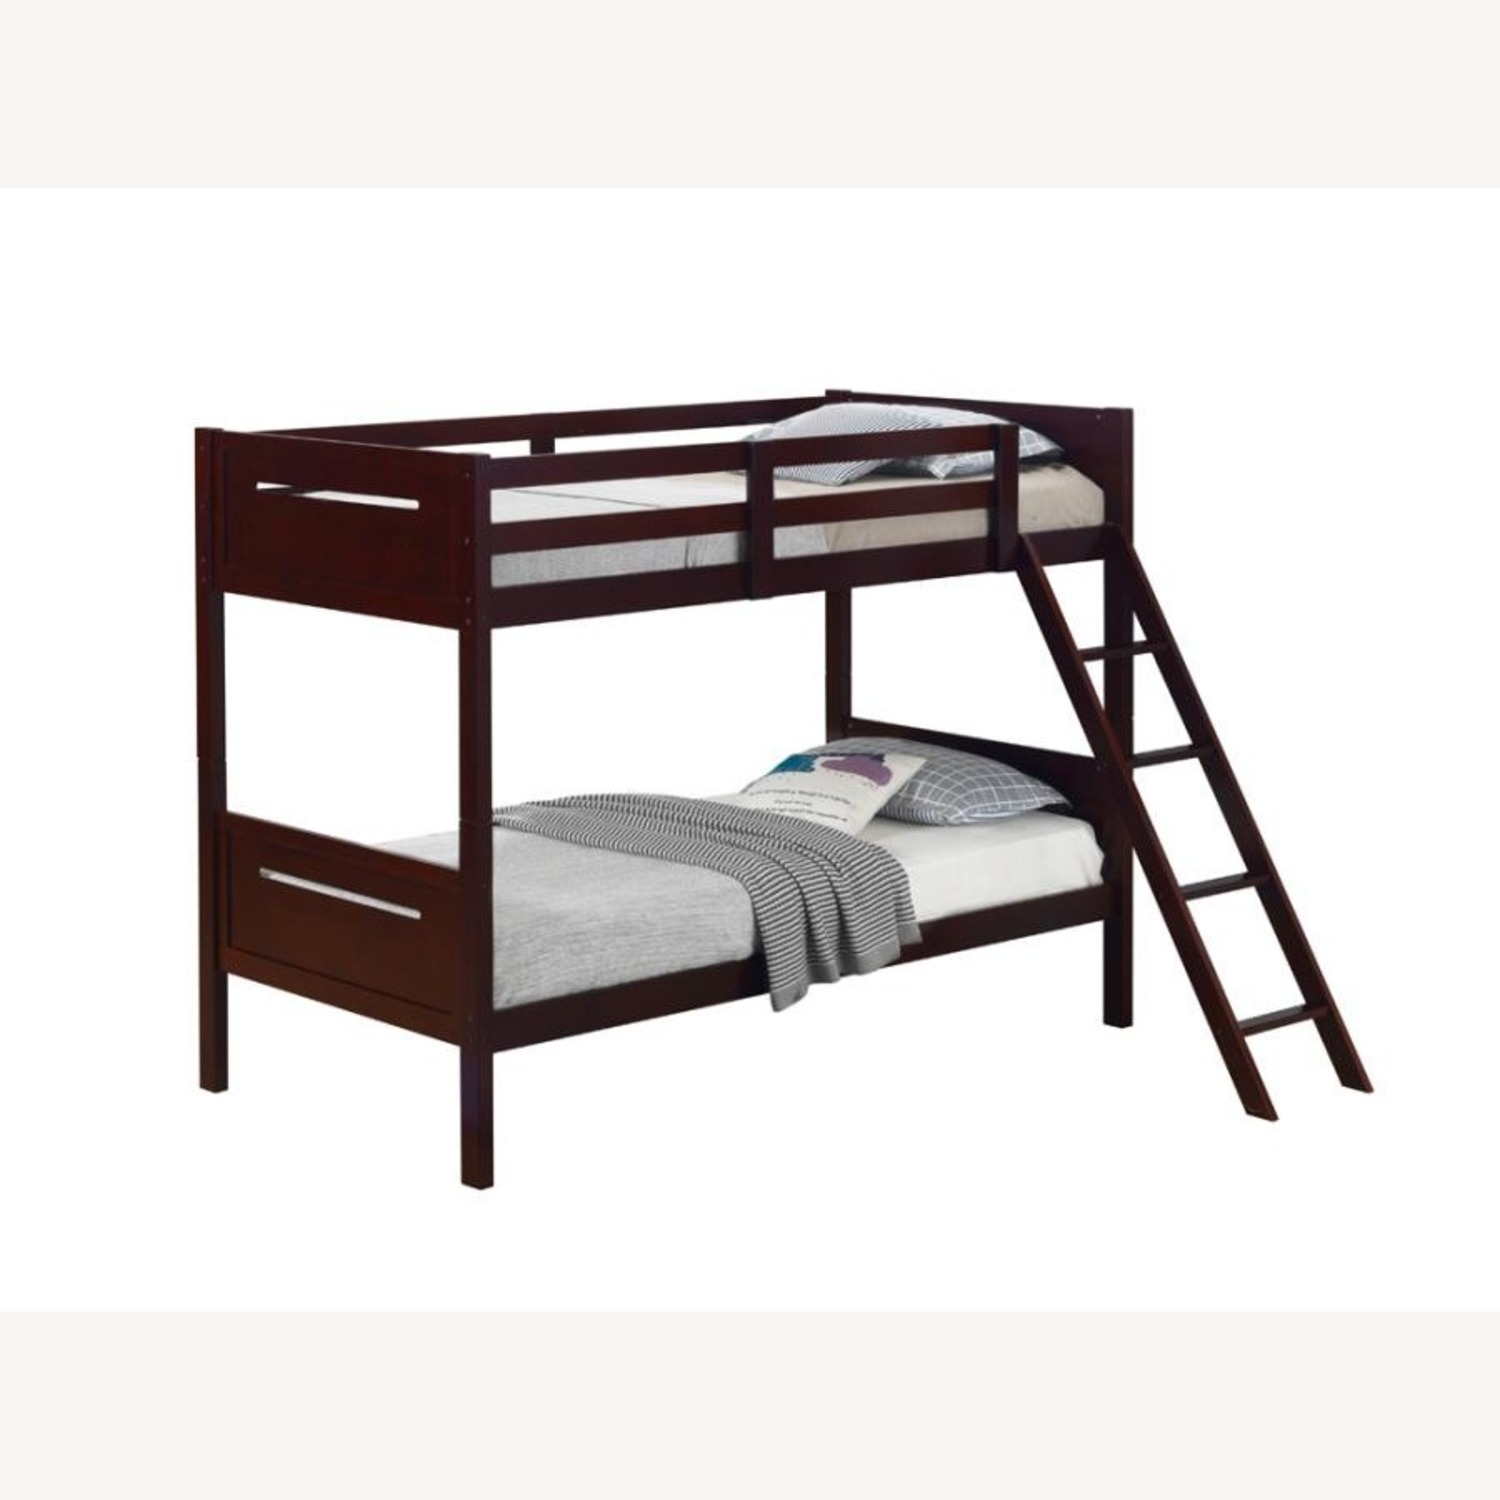 Bunk Bed In Espresso Solid Rubberwood Finish - image-0